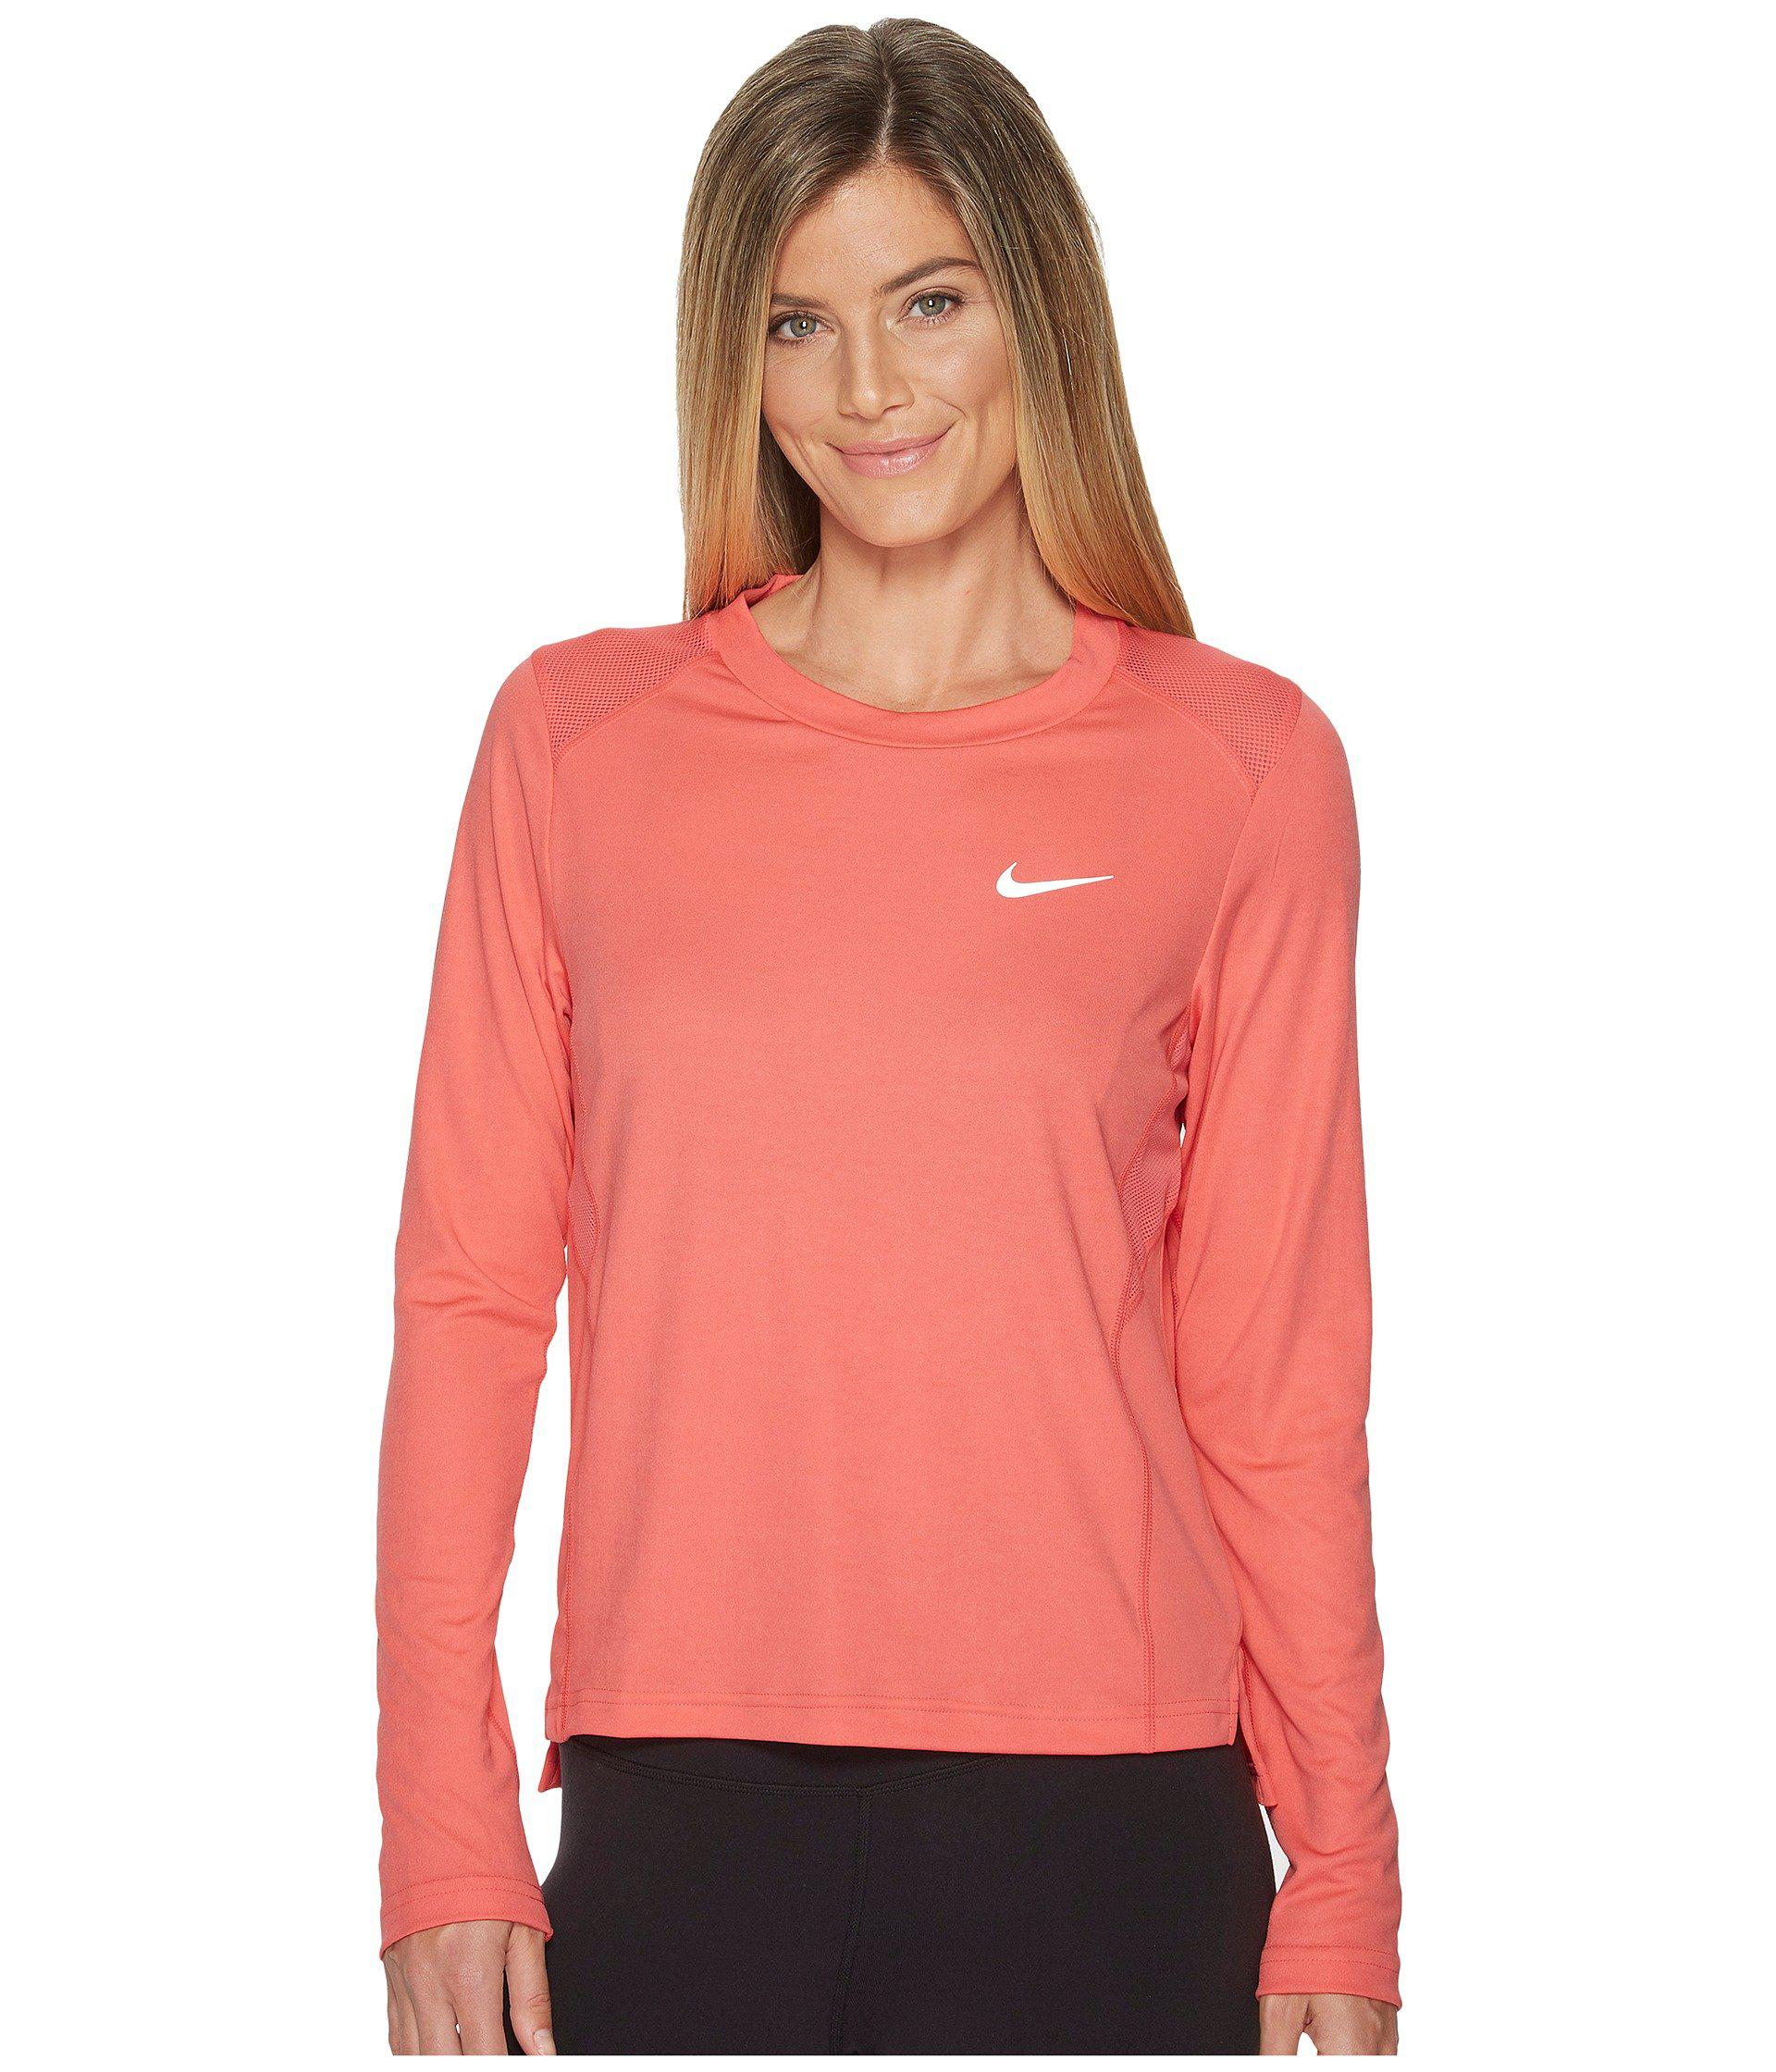 8a97569d Long Sleeved Running Tops Ladies